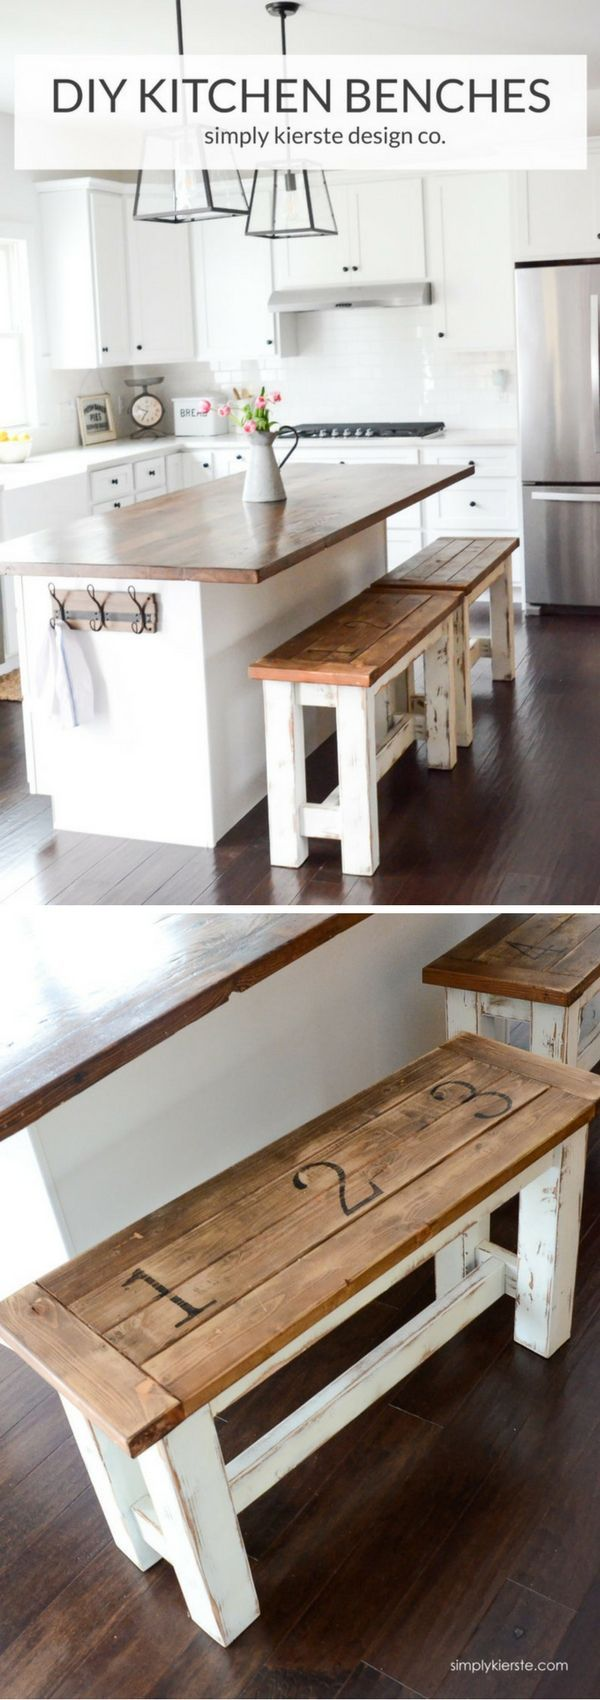 Check out the tutorial on how to make a DIY kitchen bench @istandarddesign